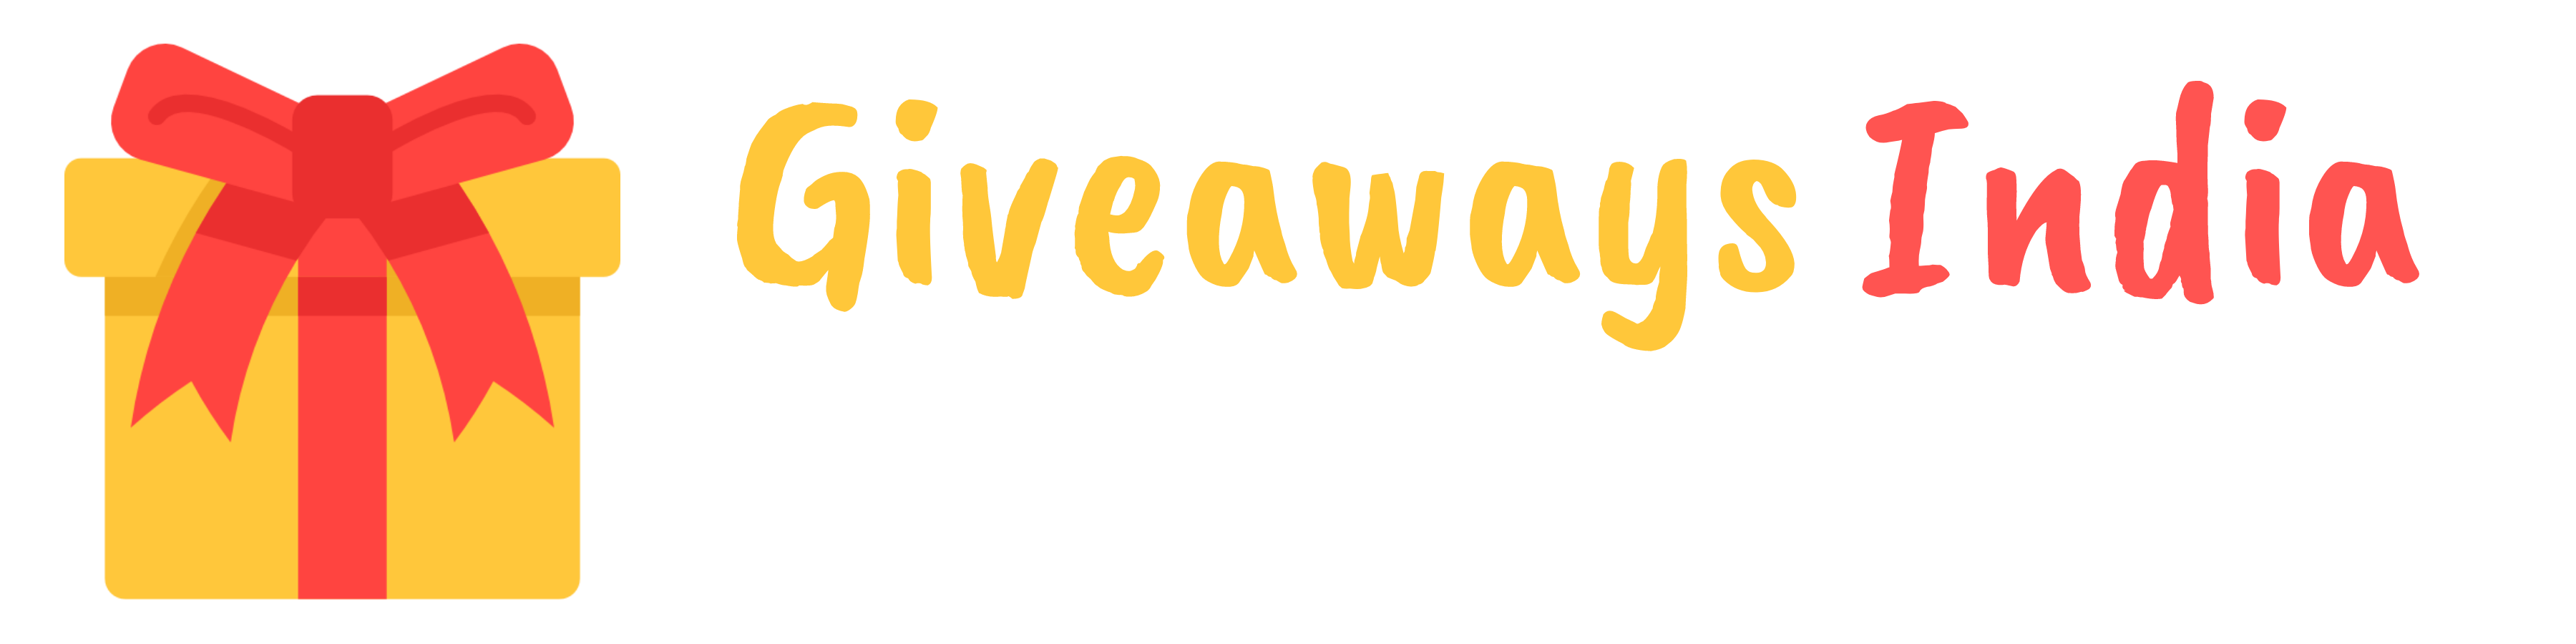 Giveaways India